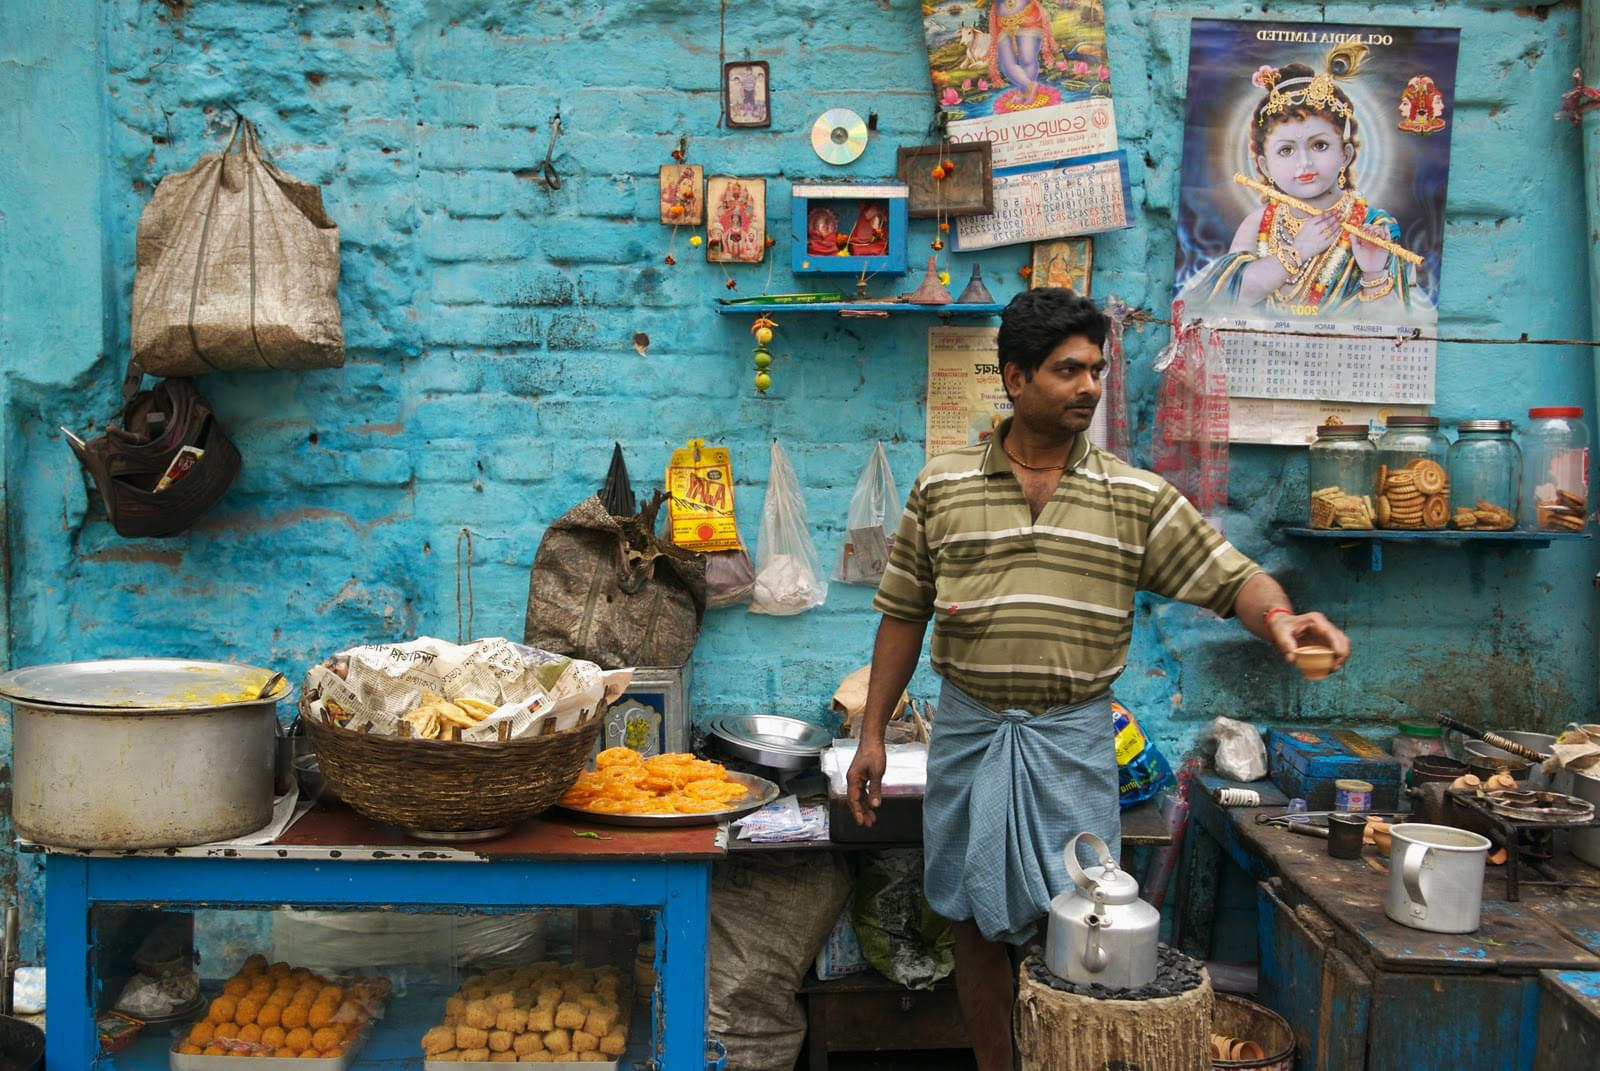 Photograph of an Indian street food vendor